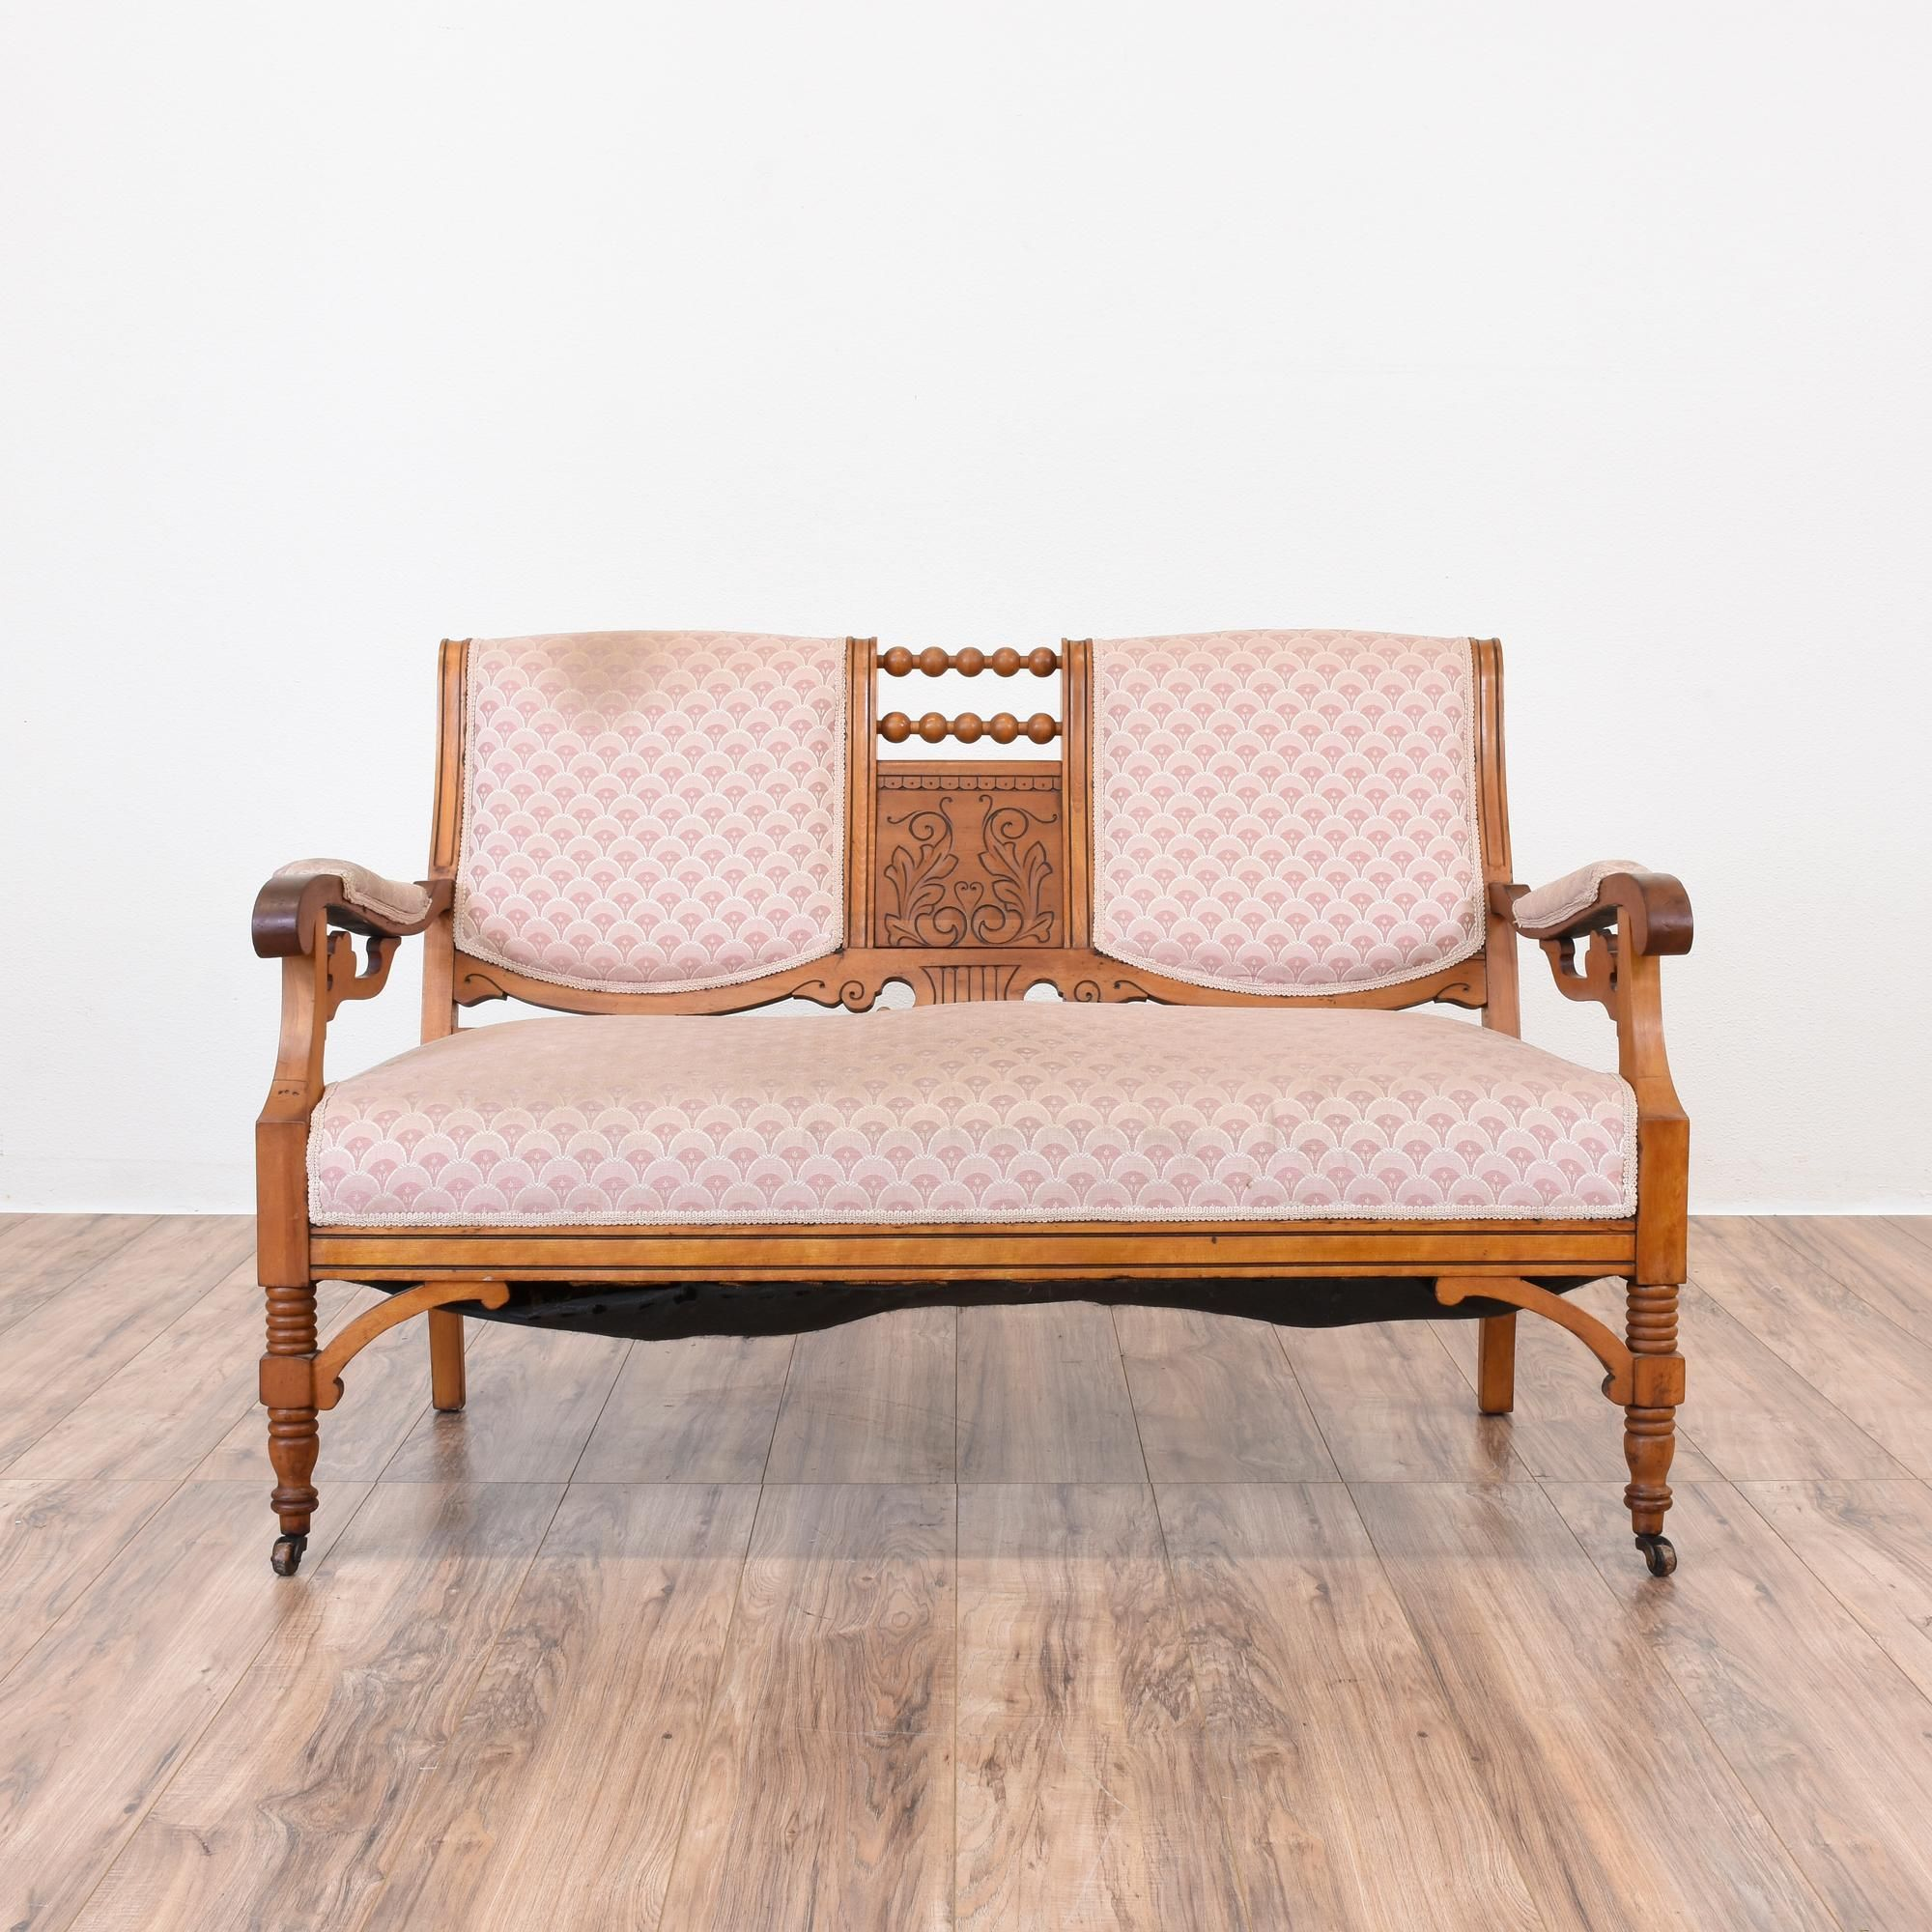 This antique eastlake settee is featured in a solid wood with a